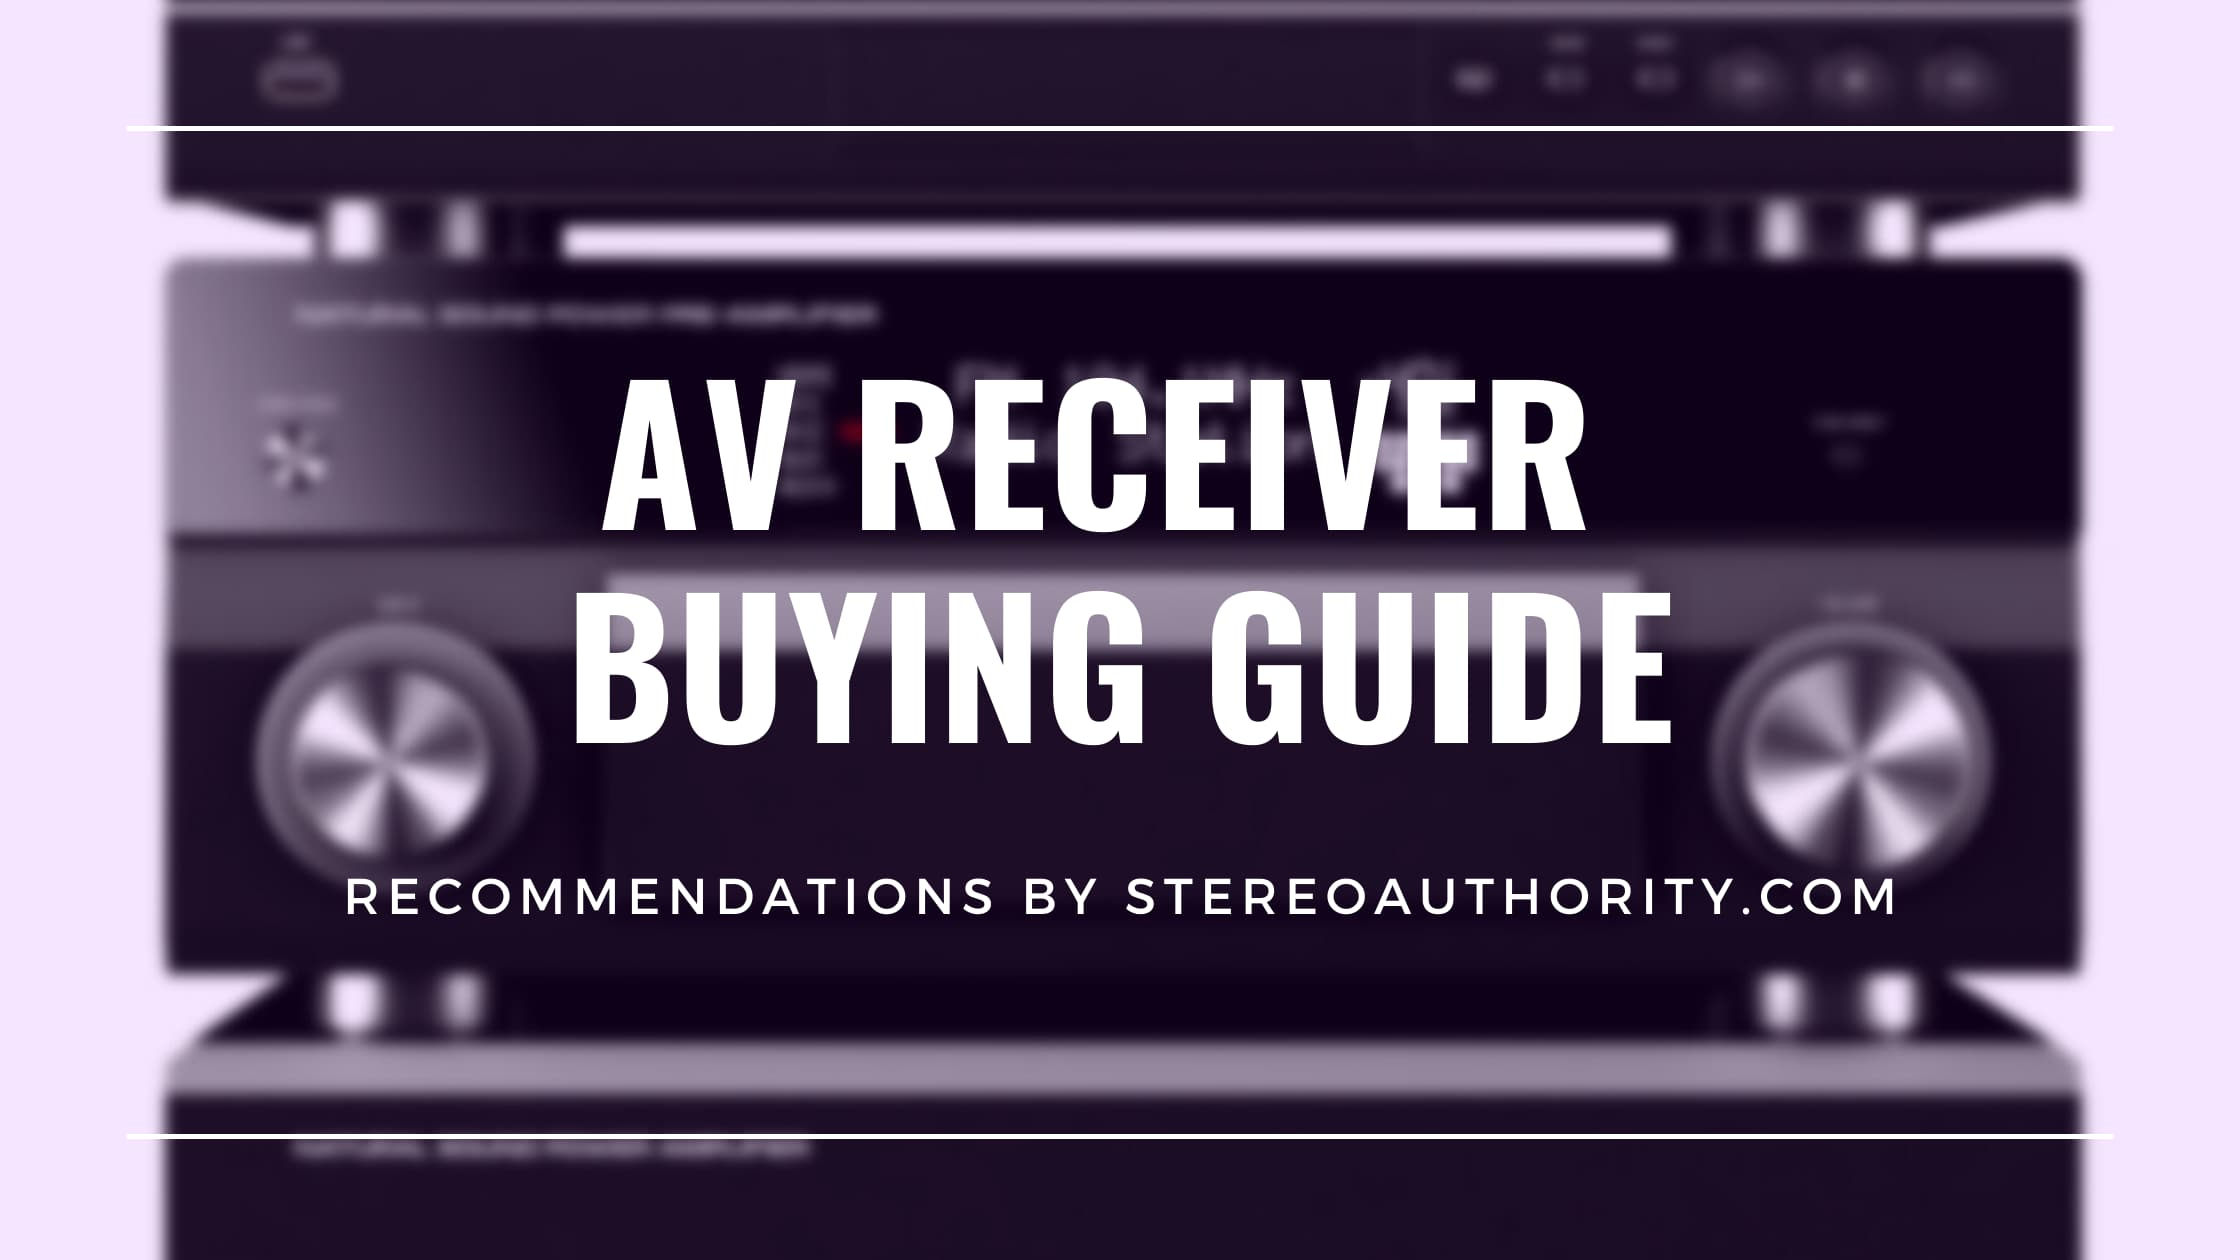 AV Receiver Buying Guide and Comparisons Recommendations